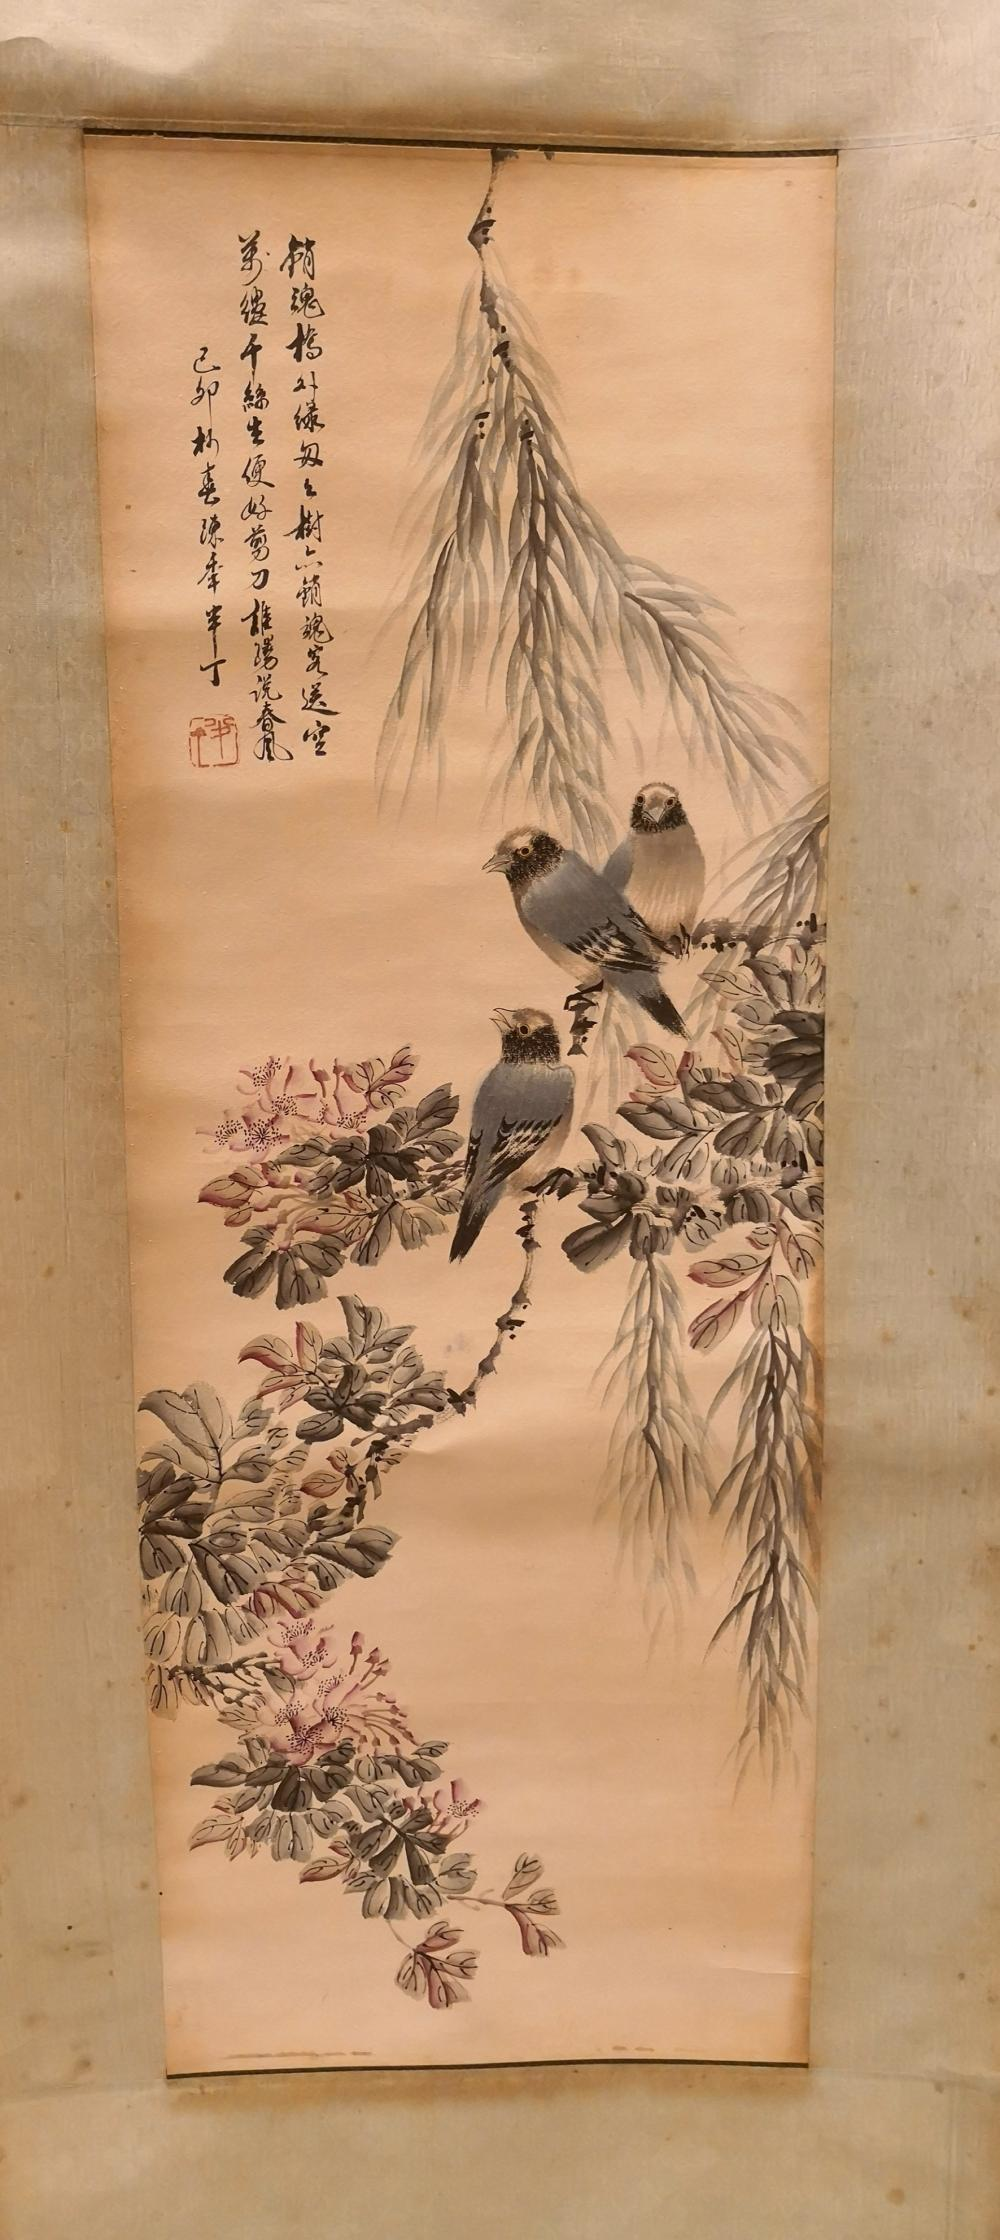 A CHINESE PAINTING OF BIRD BY CHEN BANDING